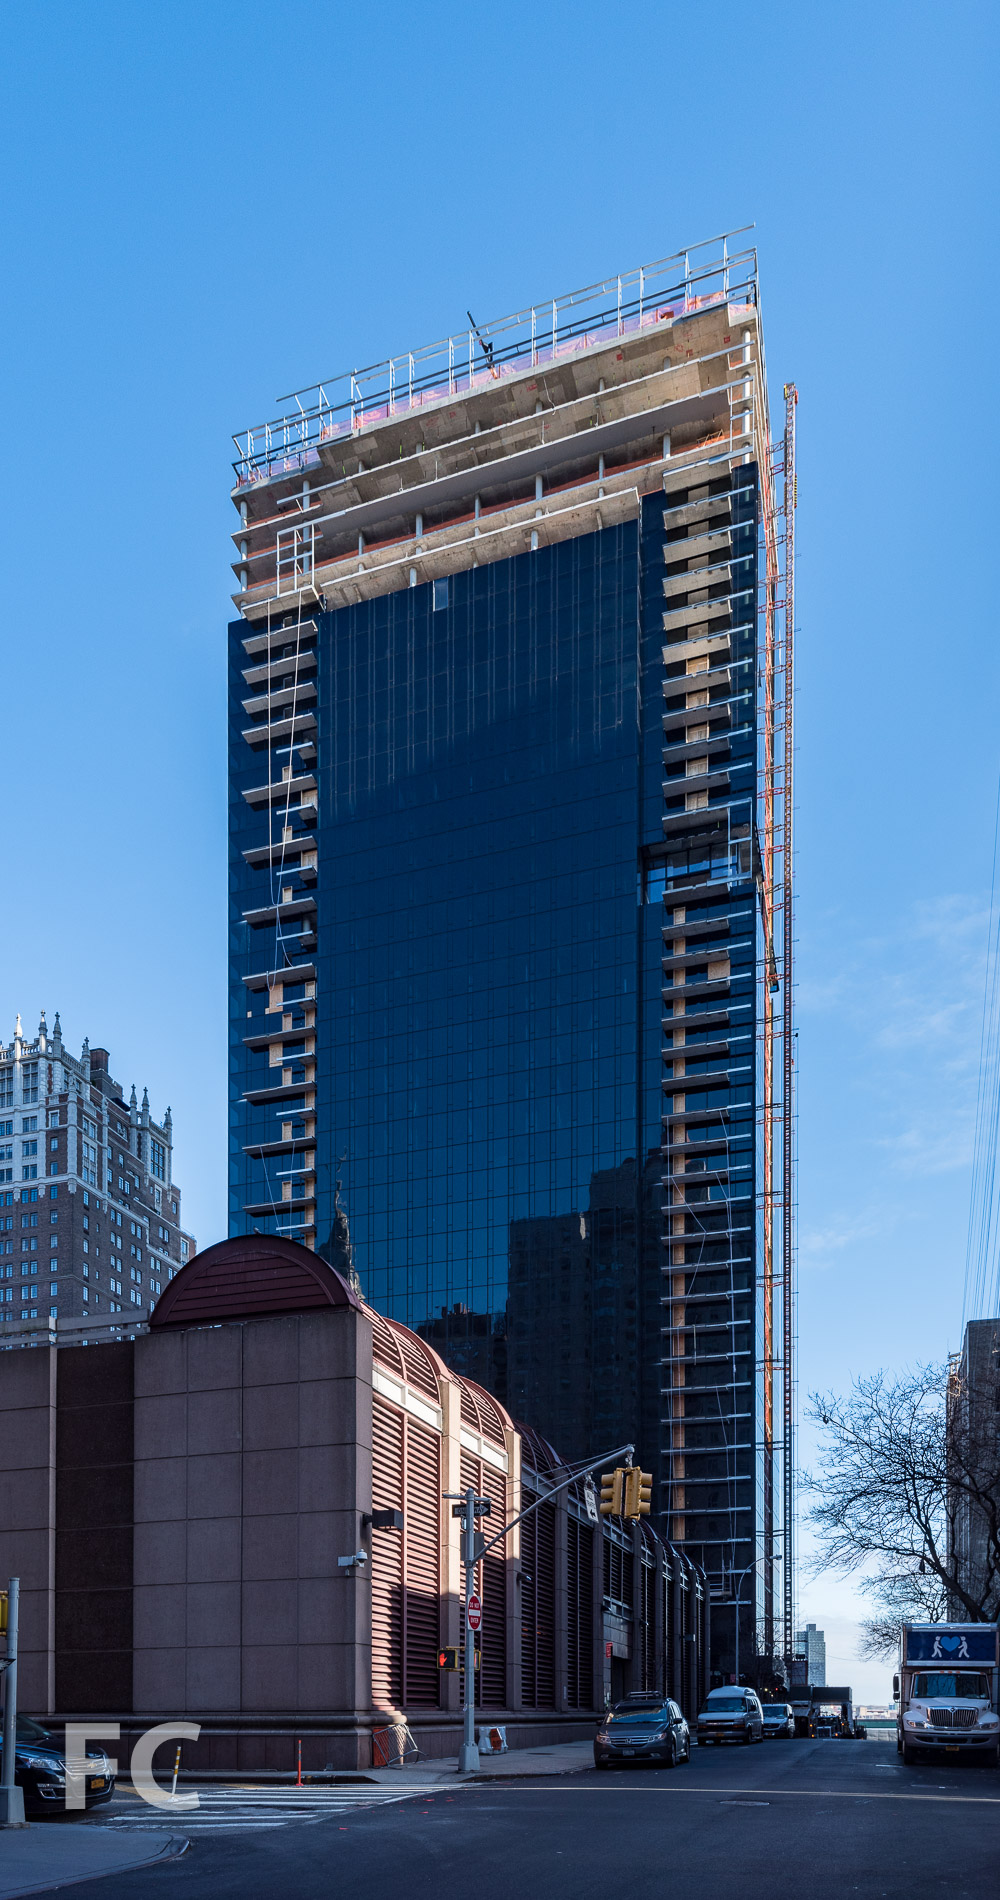 West façade from East 39th Street.